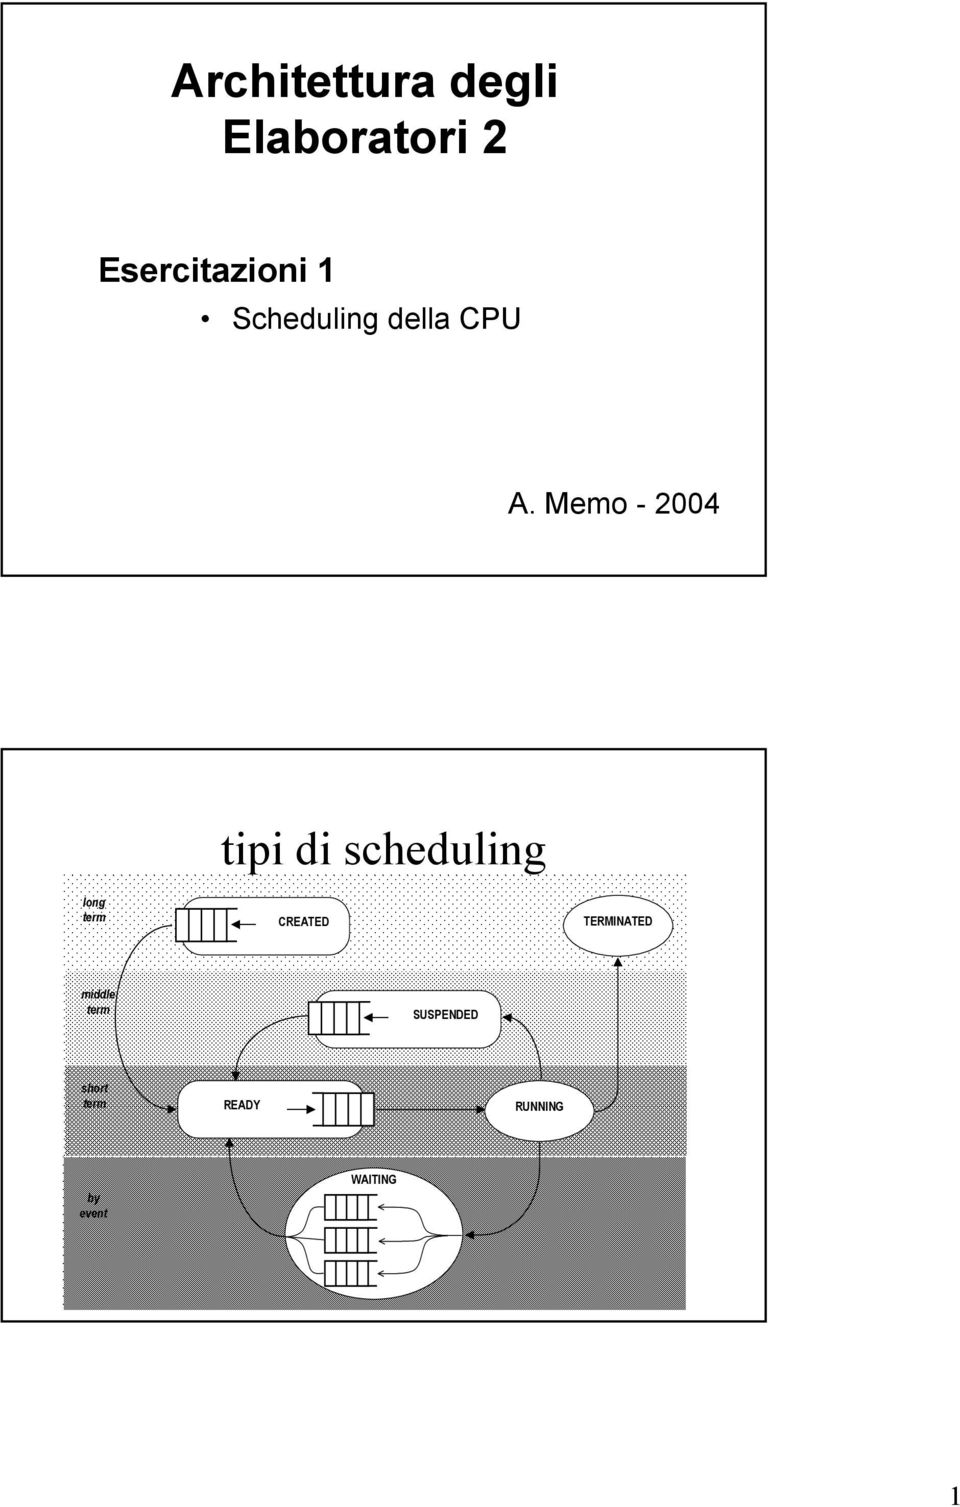 Memo - 2004 tipi di scheduling long term CREATED